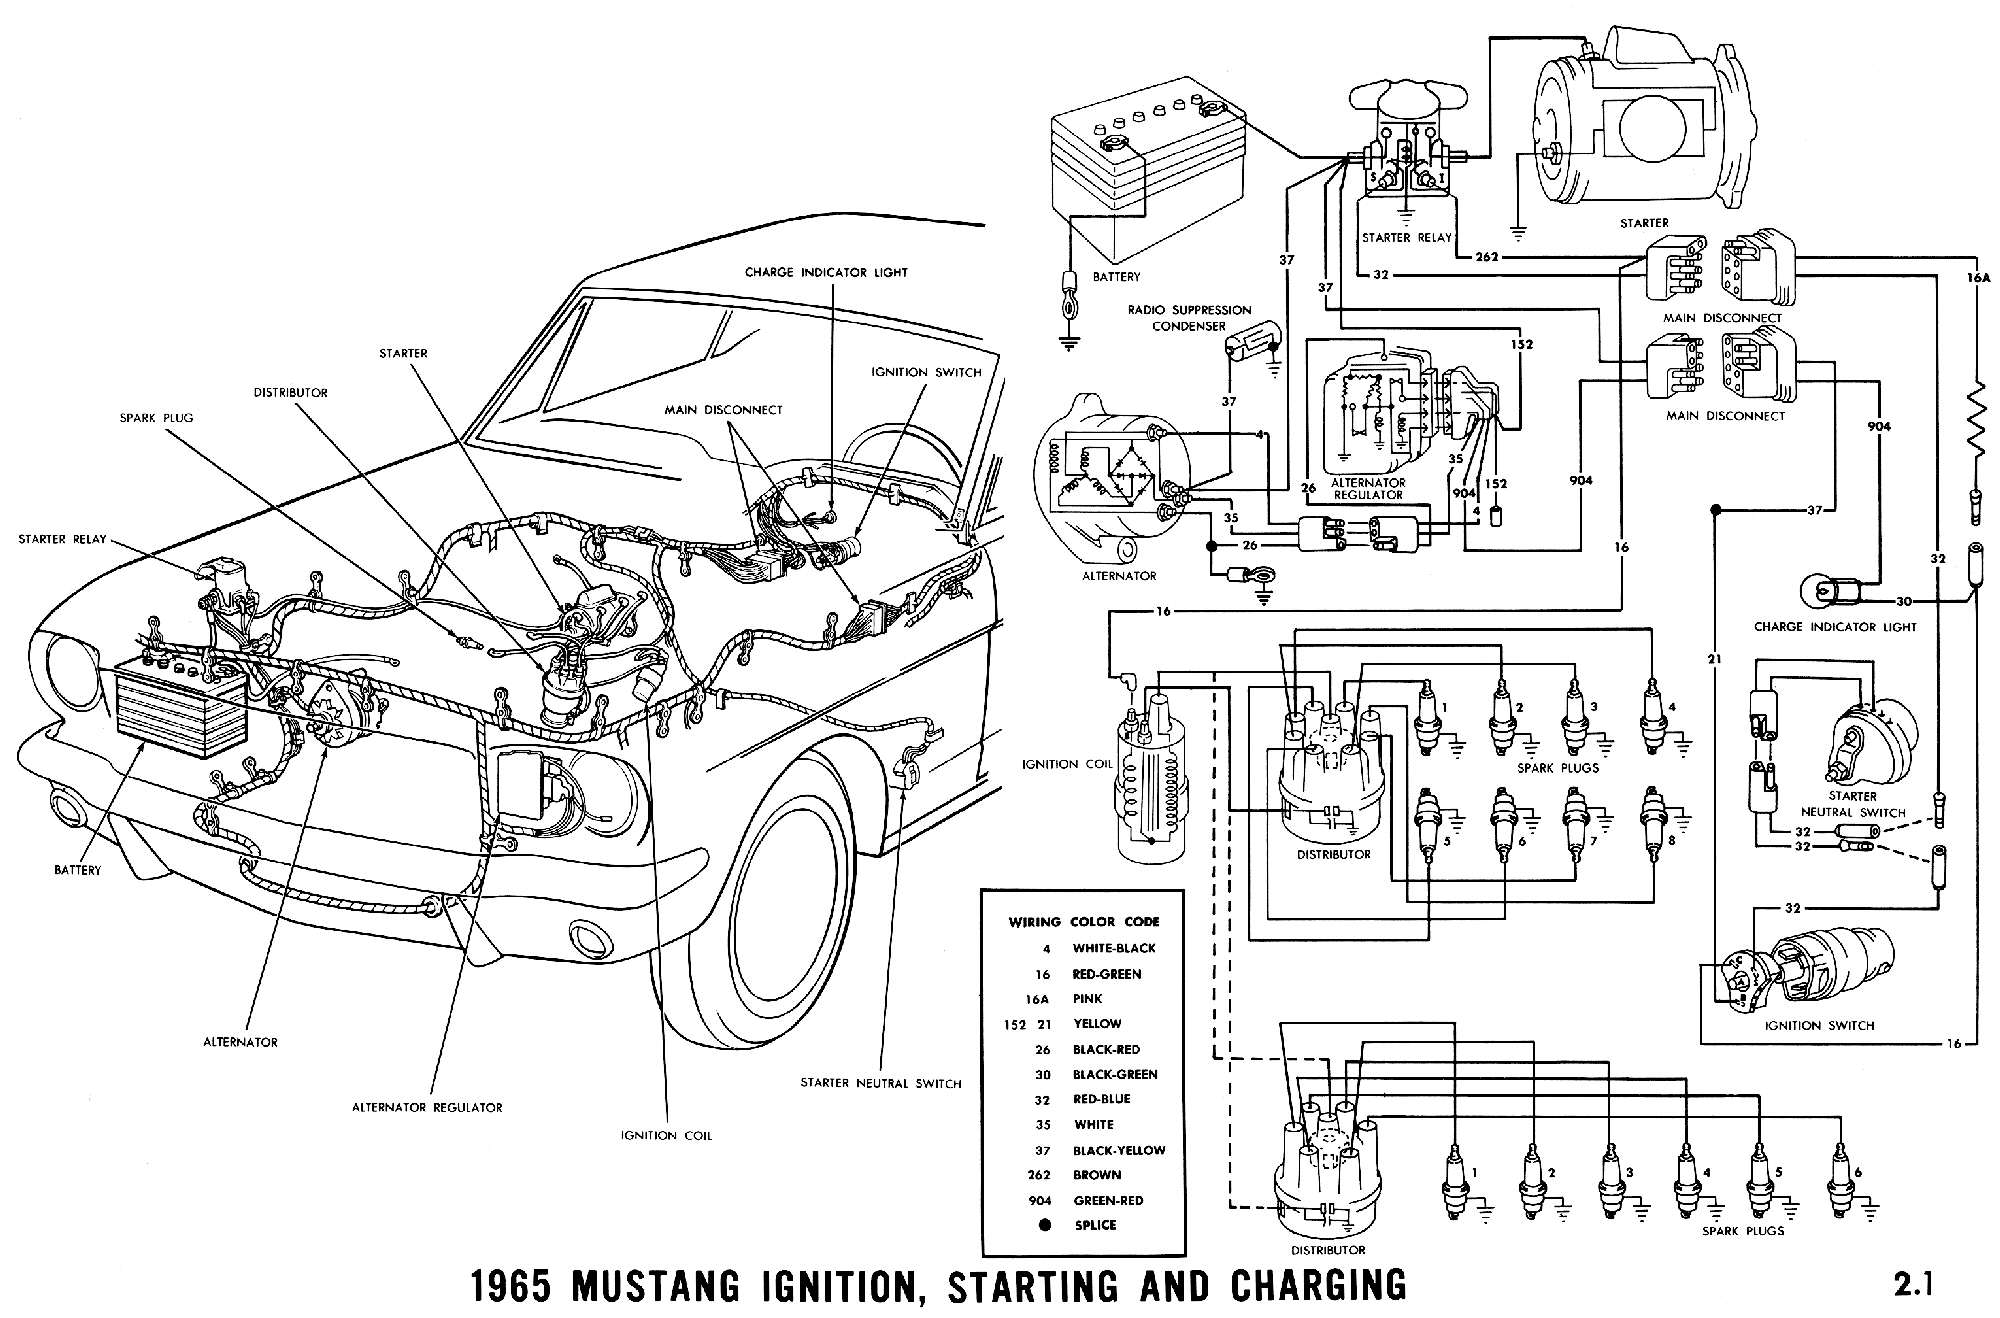 1965c 1965 mustang wiring diagrams average joe restoration 1966 mustang starter wiring diagram at alyssarenee.co